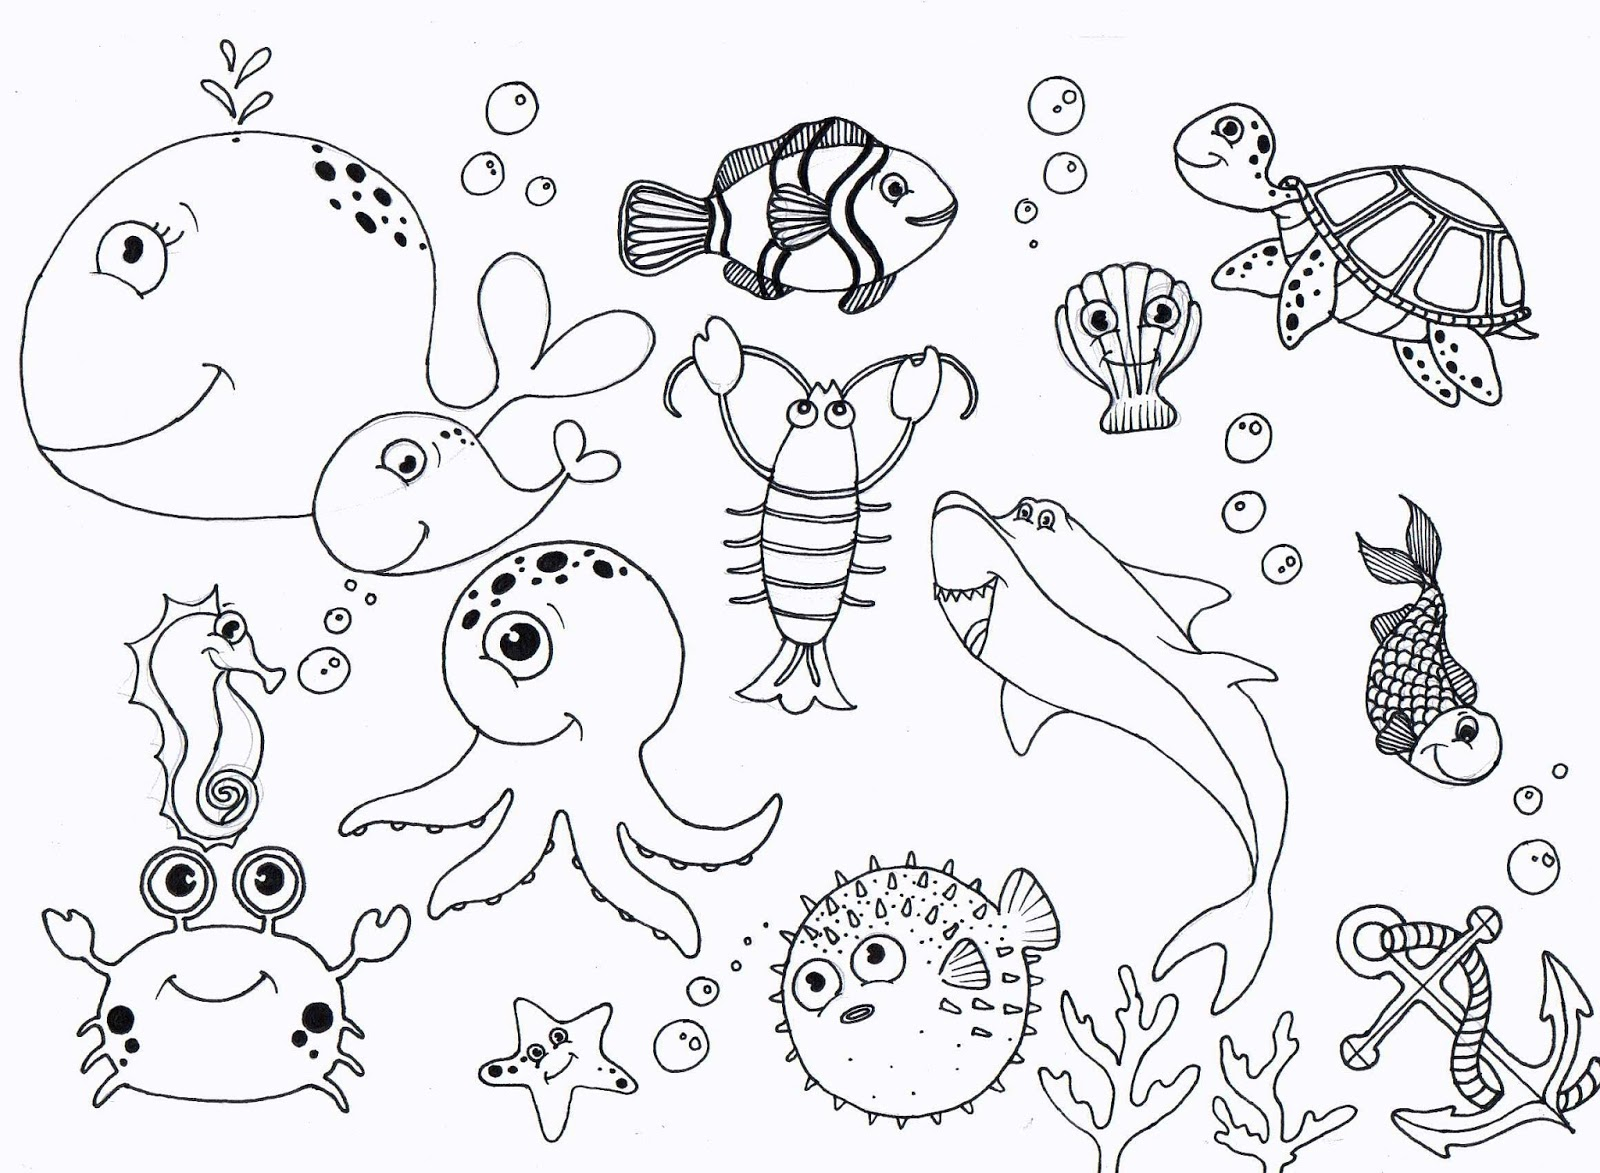 wall murals: Drawing Ideas Under the sea